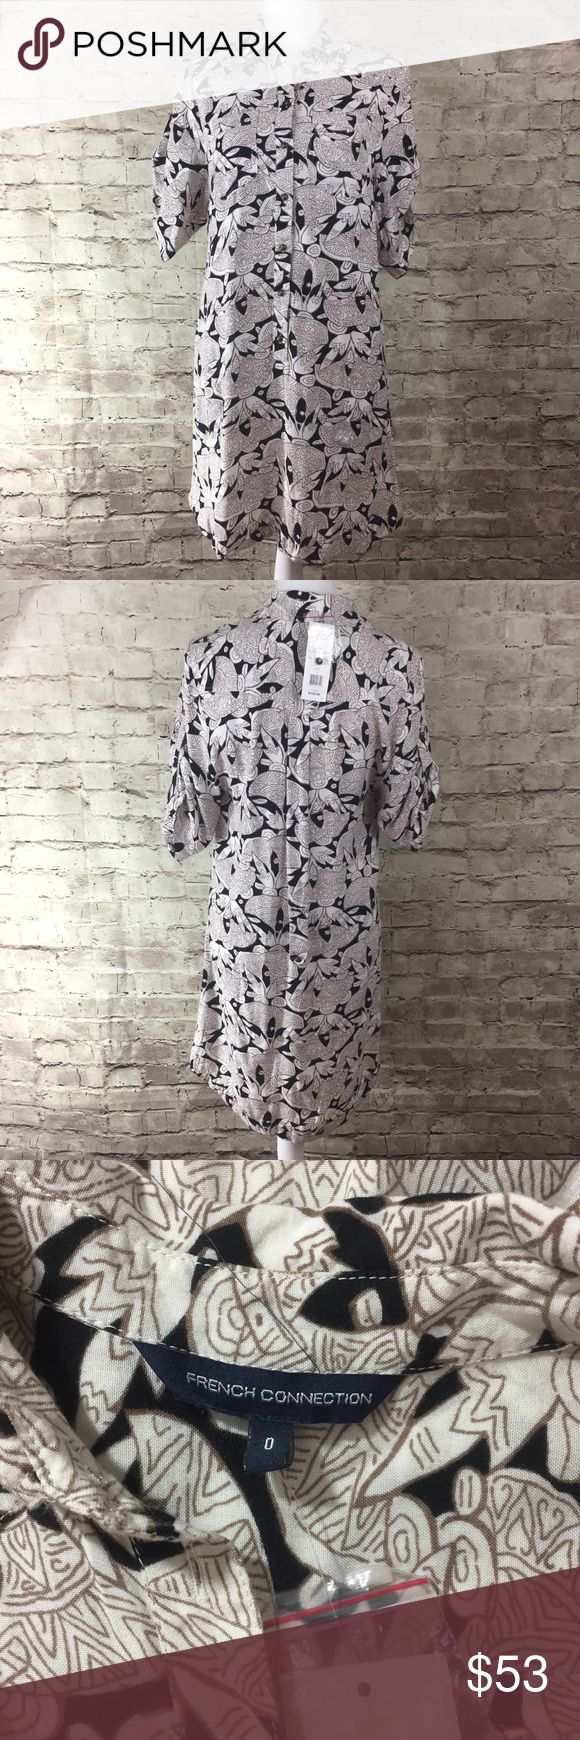 French Connection Shirt Dress Printed shirt dress new with tags • has pockets • not lined and material is lightweight • has 3/4 sleeves with buttons to fold over French Connection Dresses Mini